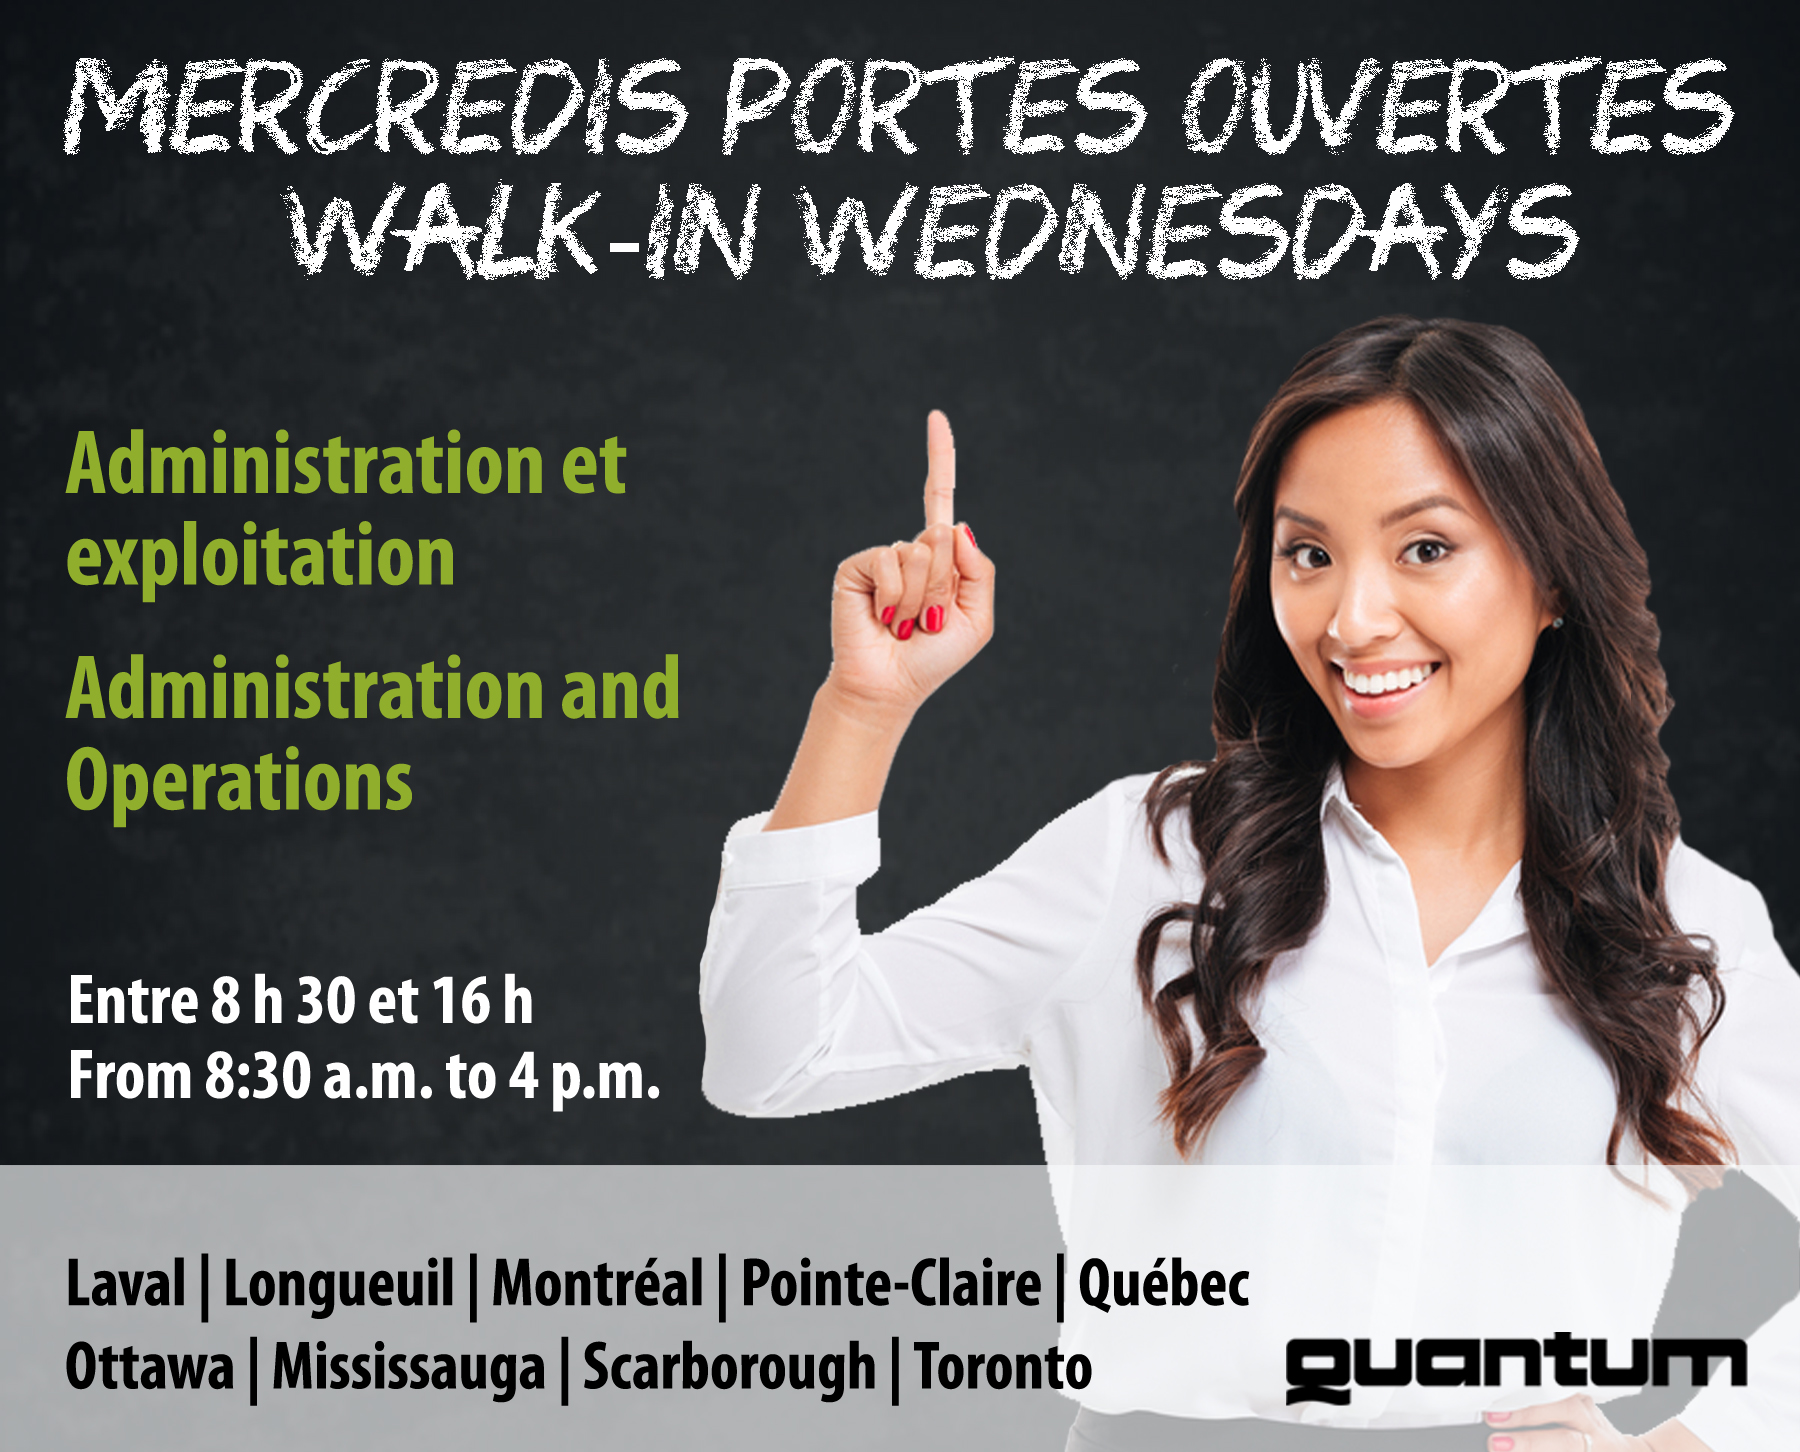 WALK-IN WEDNESDAYS!